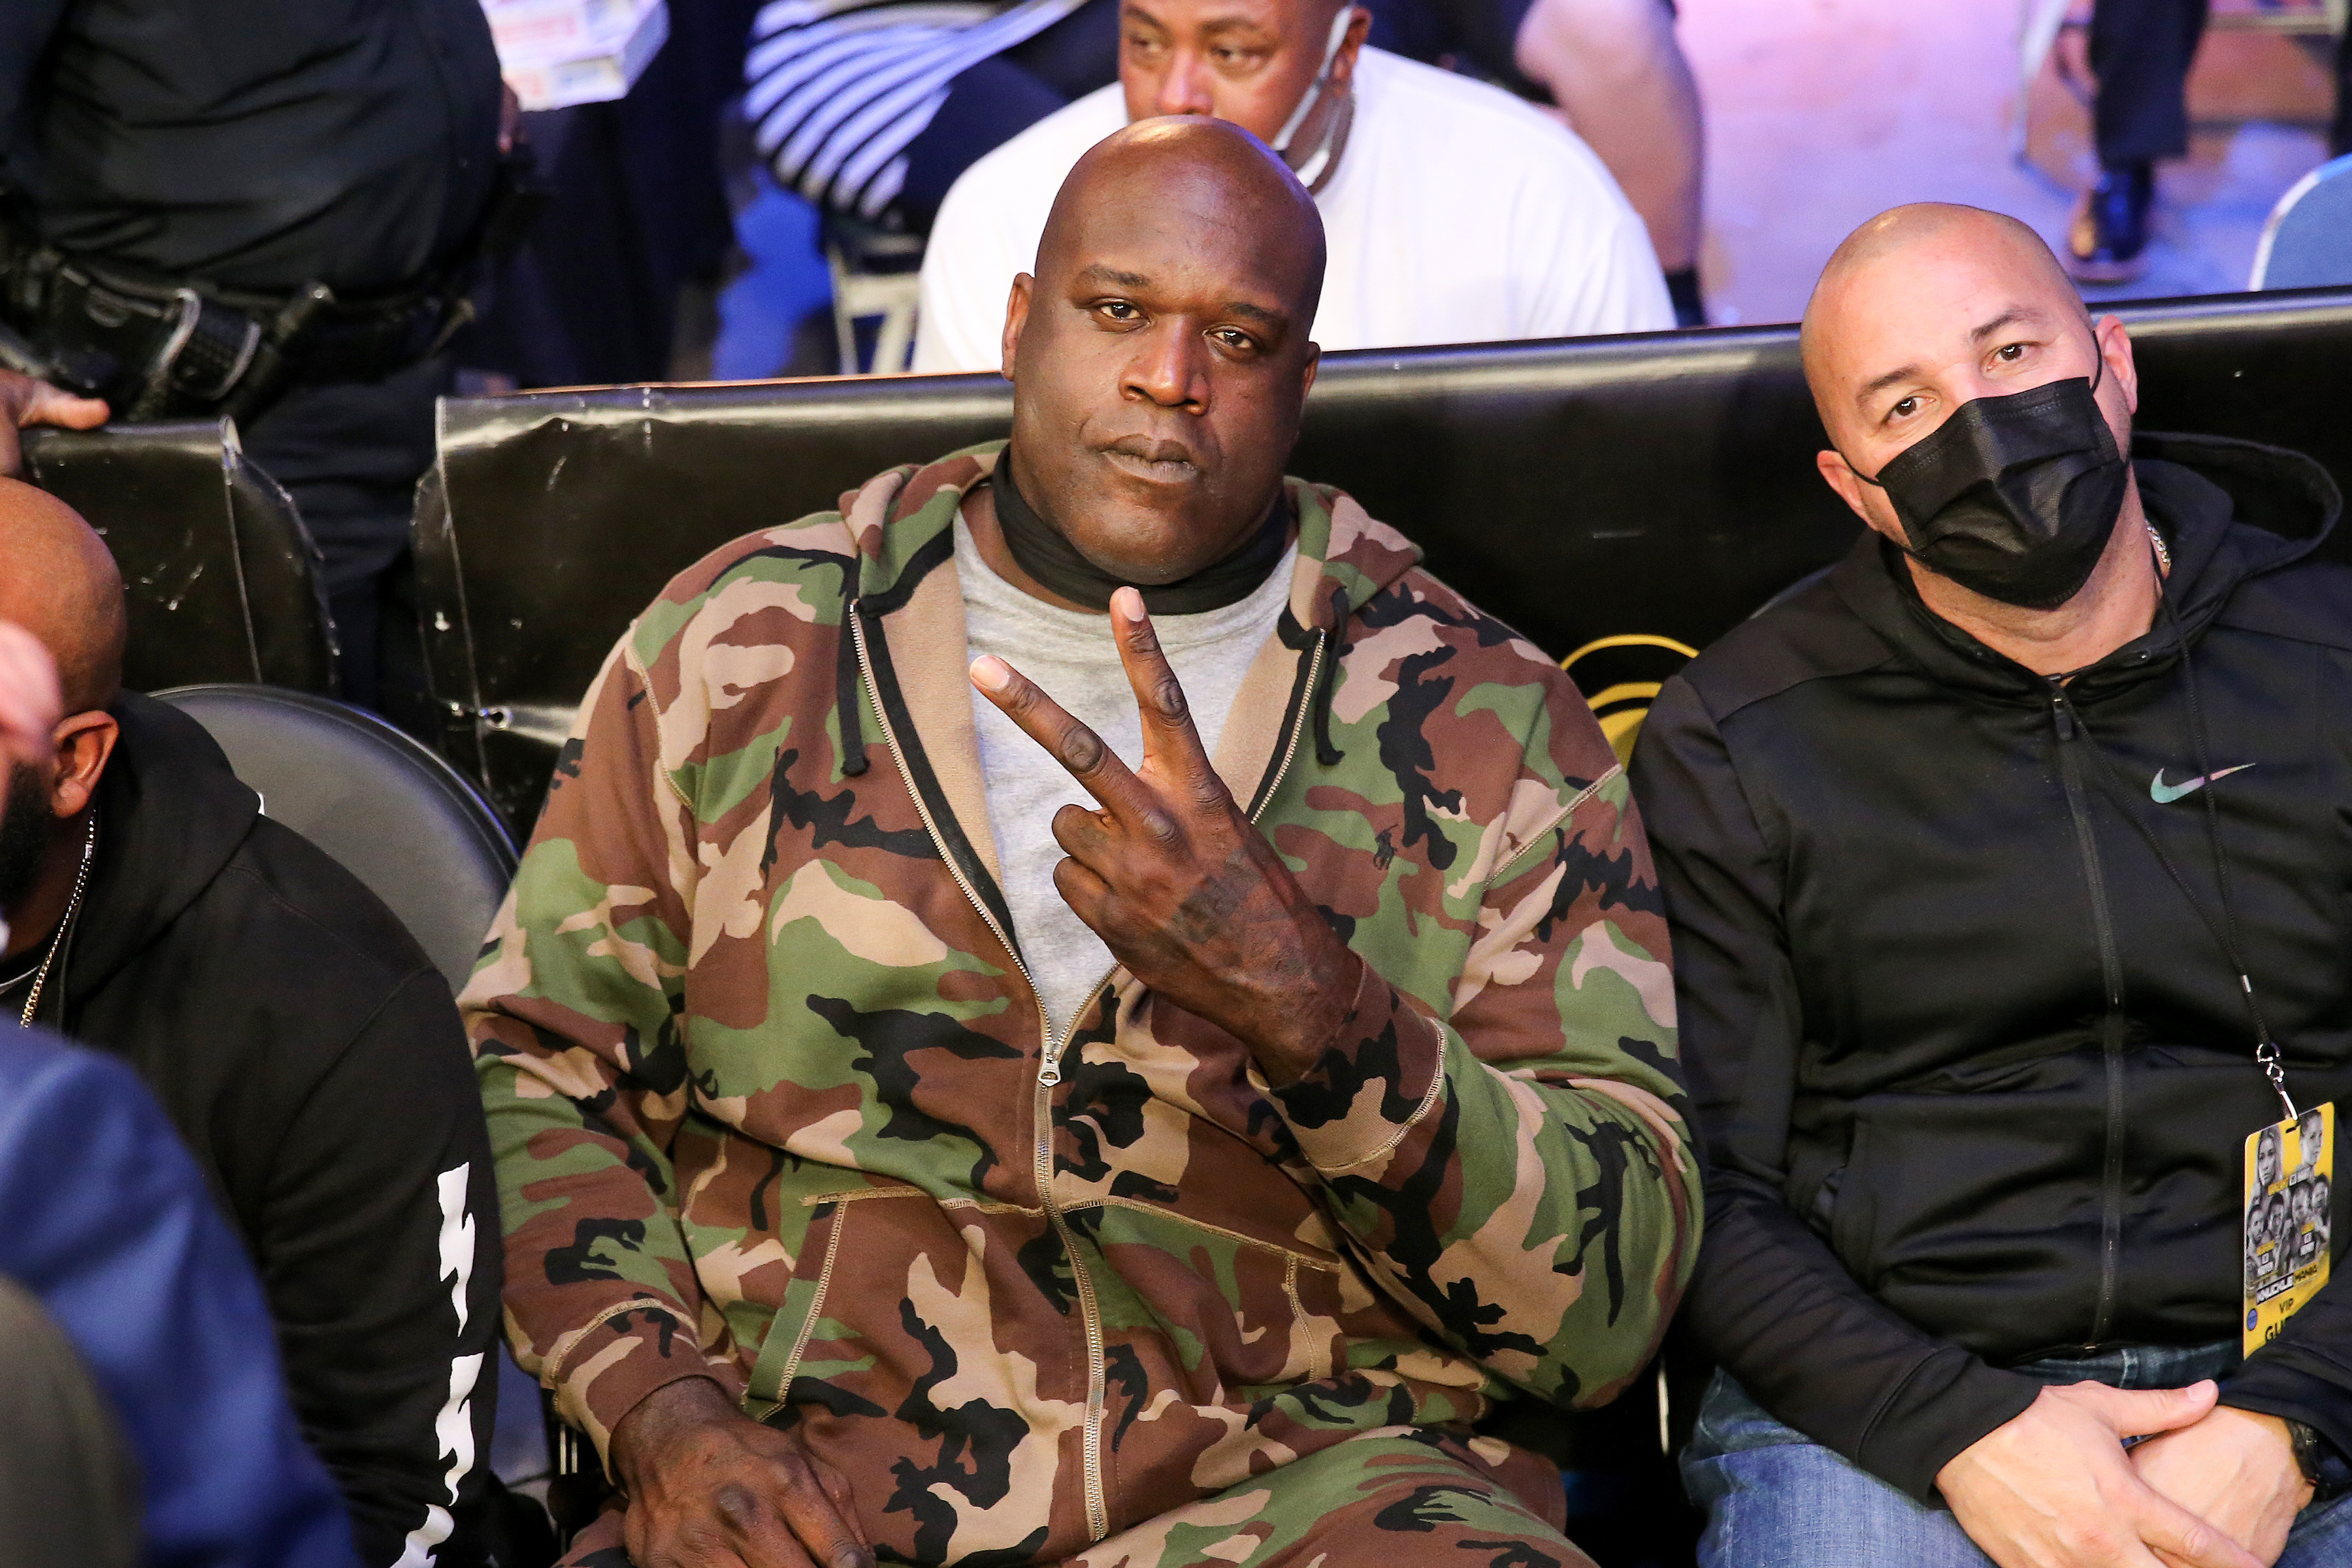 Shaquille O'Neal attends an event in 2021